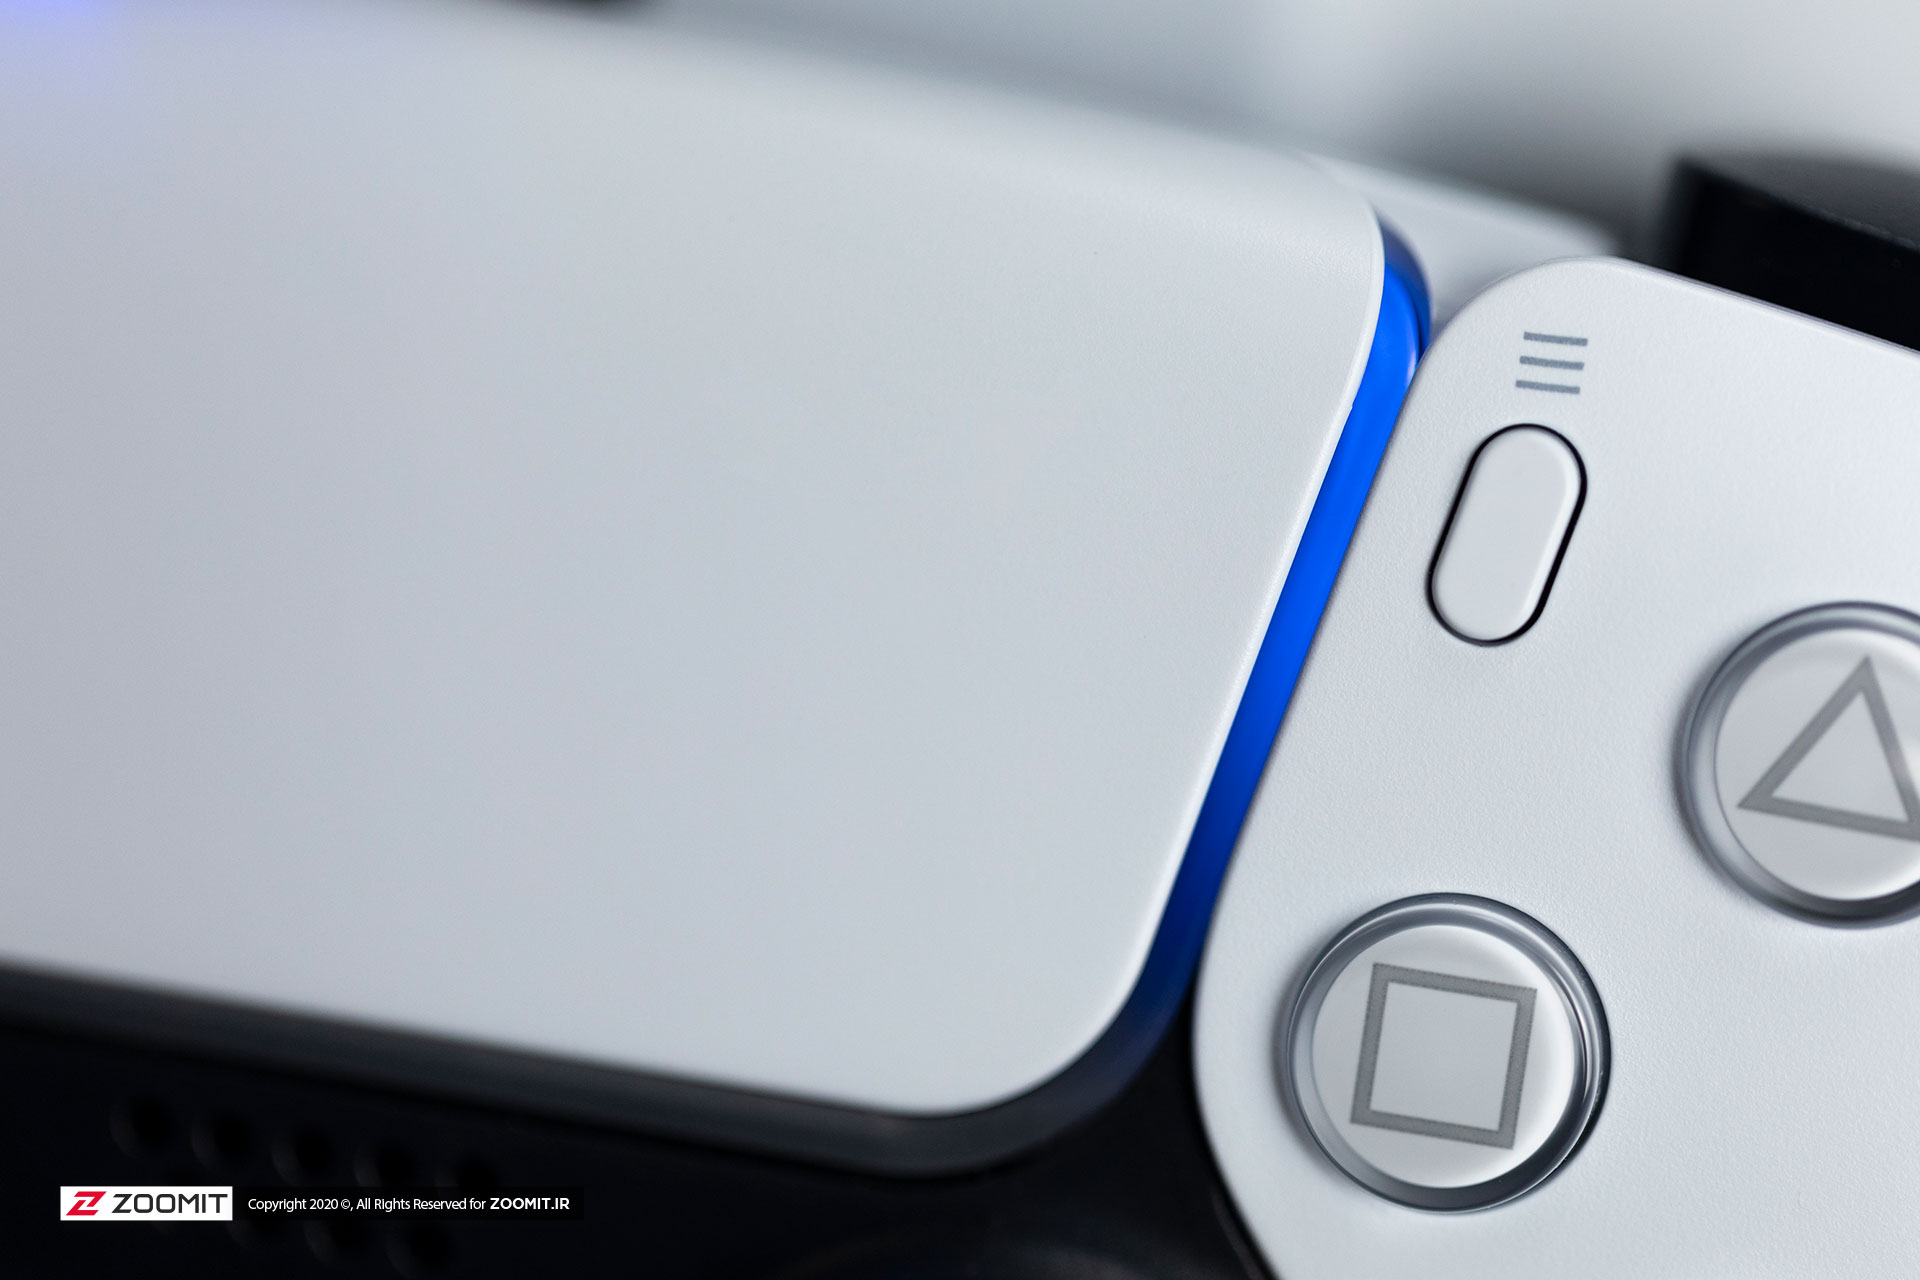 PlayStation 5 PS5 touchpad